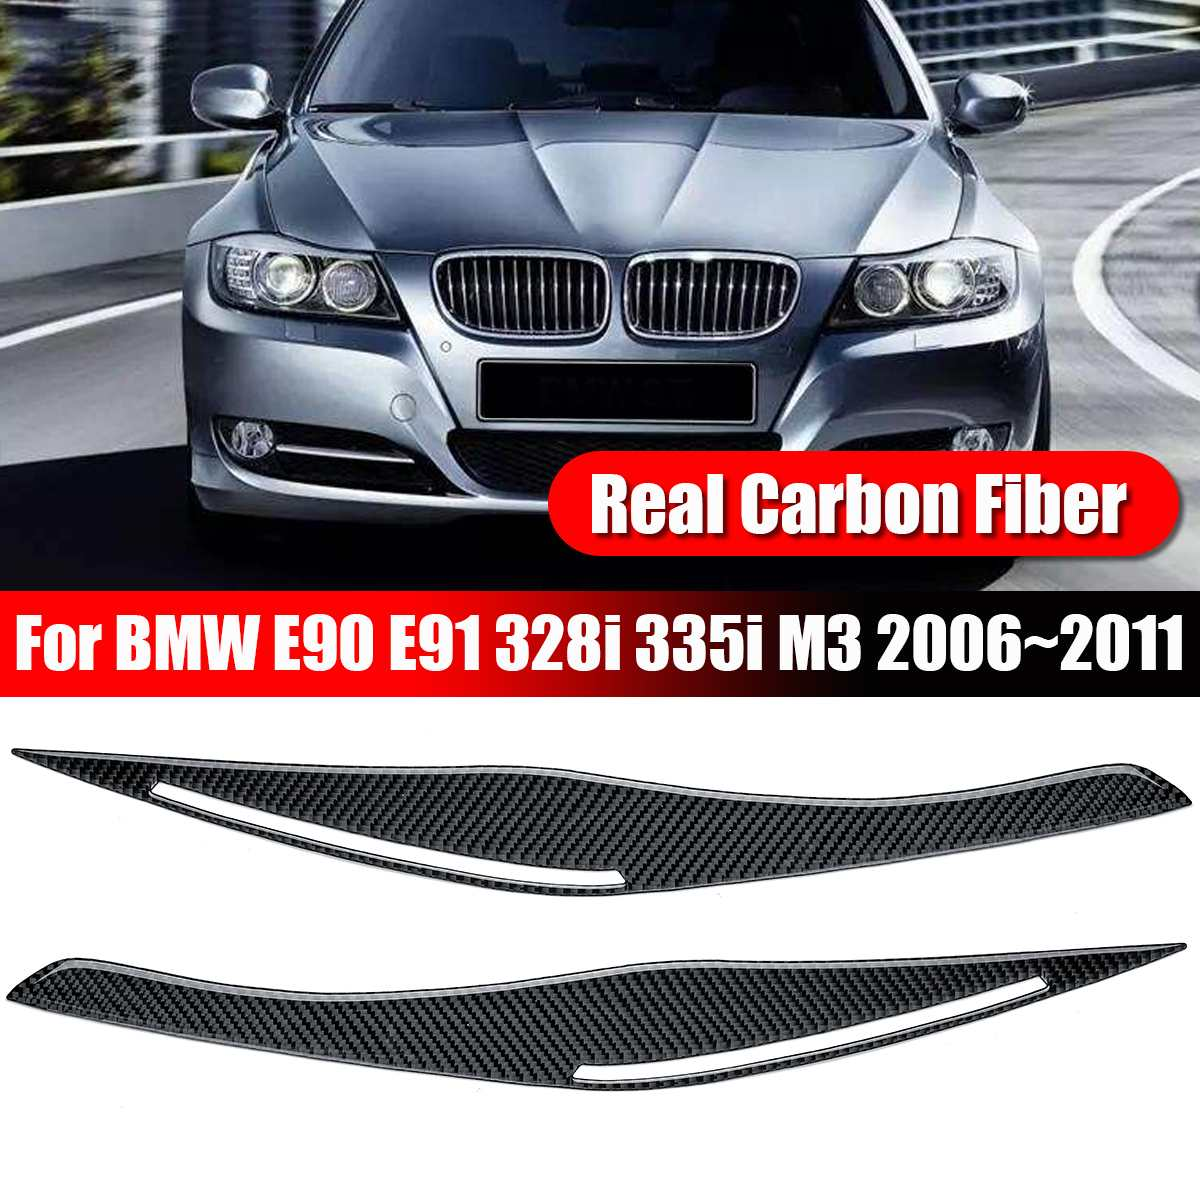 2pcs/set Carbon Fiber Headlight Eyelid Eyebrow Cover Trim Stickers for BMW E90 E91 328i 335i M3 2006-2011 Front Eyebrow Cover image